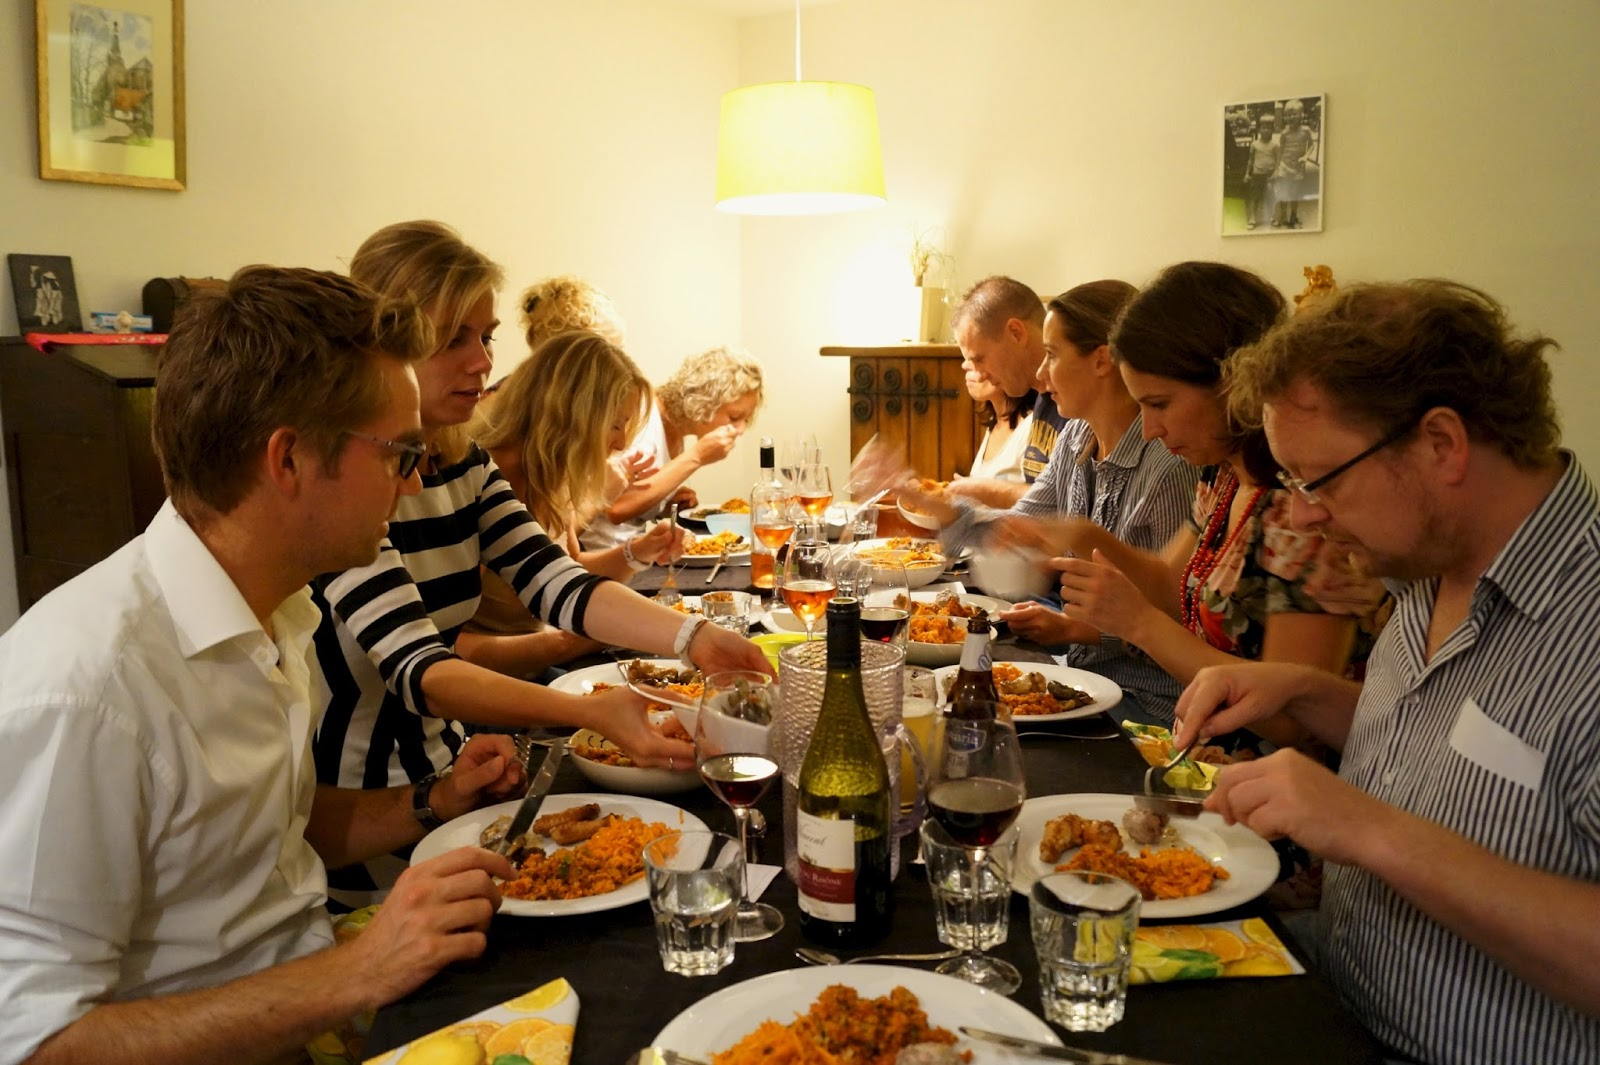 Crazy Dutch Foodie: The Perfect Dinner Party with Friends!